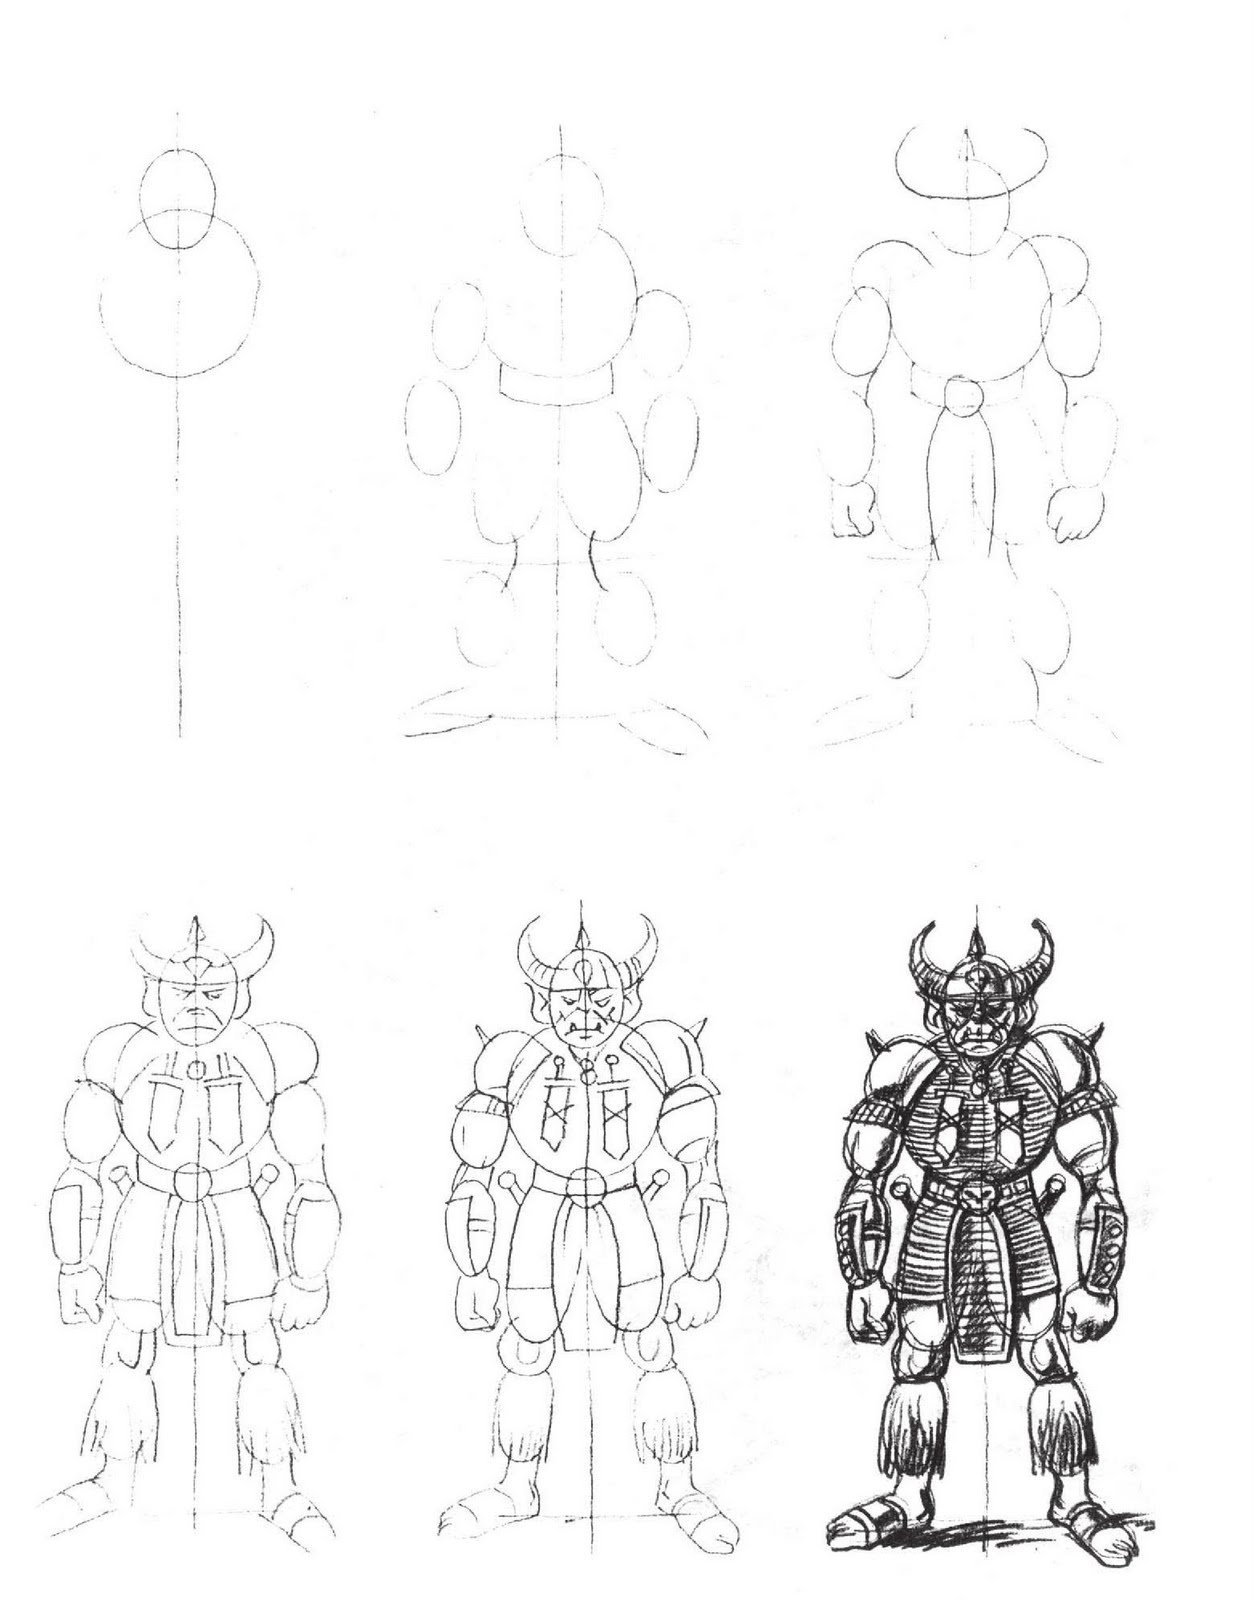 how to draw a knight helmet step by step how to draw a knight step by step guide how to draw to helmet a step by draw knight step how